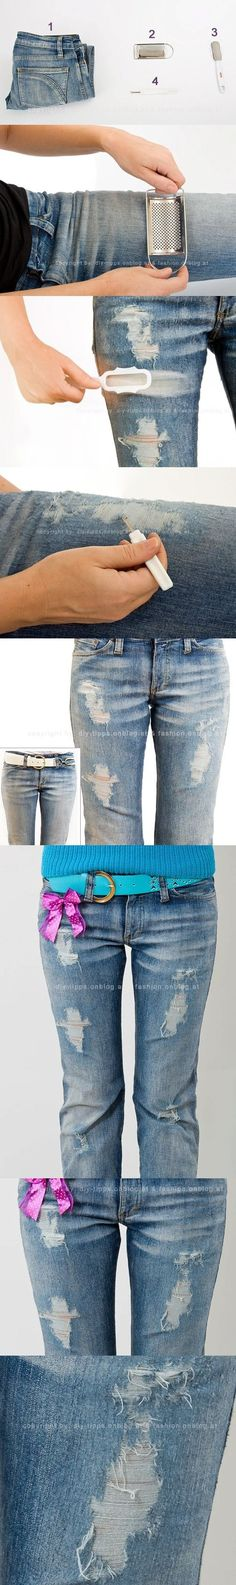 awesome Fashion DIY Tutorial: Used (Destroyed) Jeans Homemade DIY by http://www.dezdemonfashiontrends.top/diy-fashion/fashion-diy-tutorial-used-destroyed-jeans-homemade-diy/